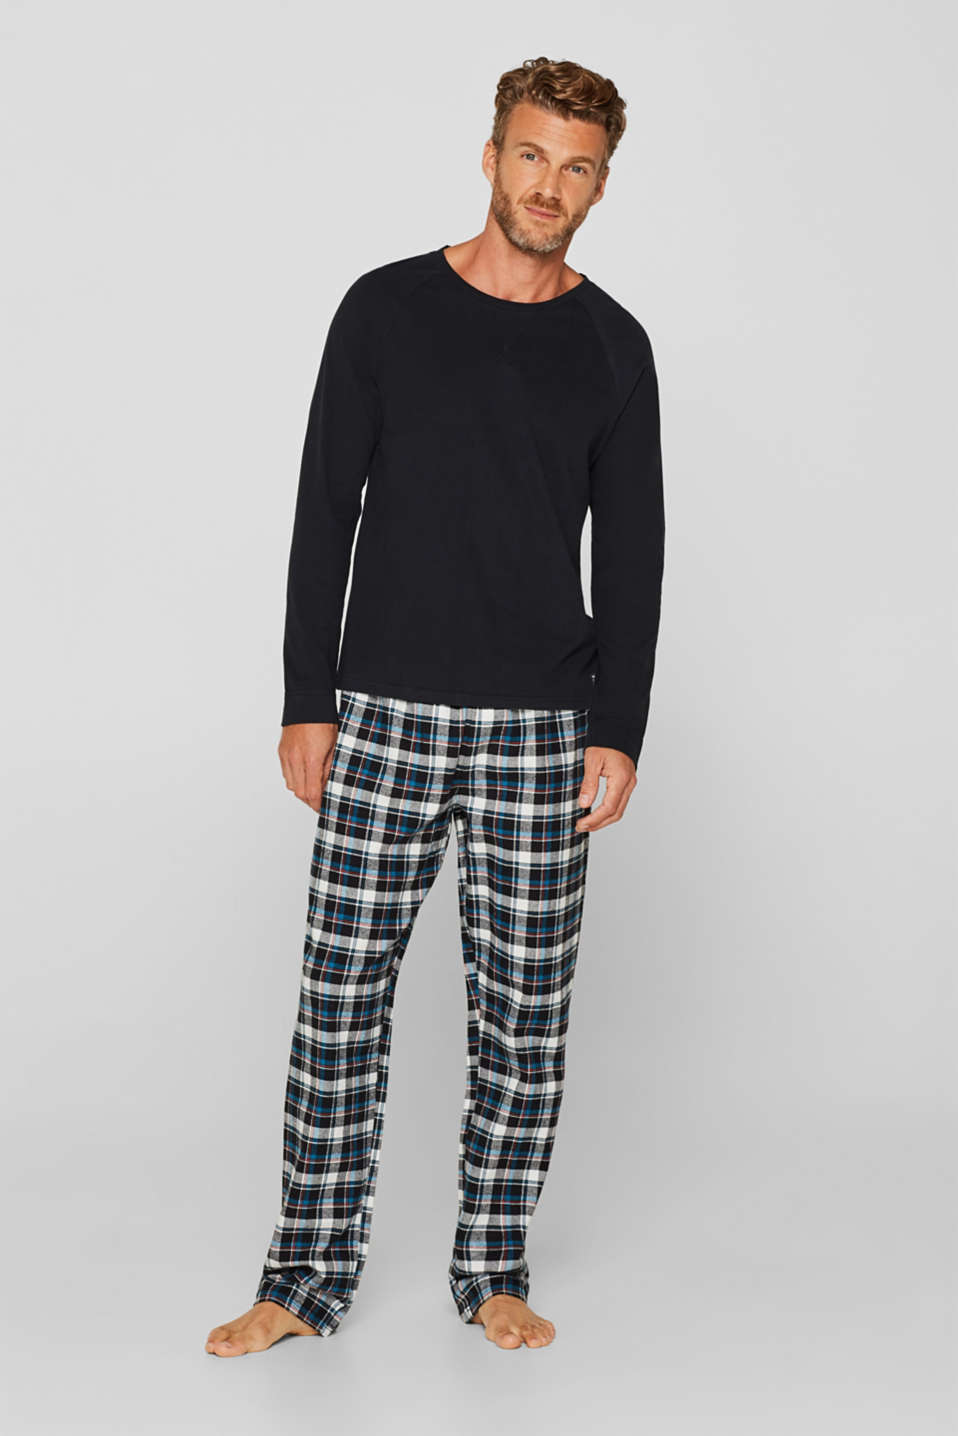 Jersey/flannel pyjamas, 100% cotton